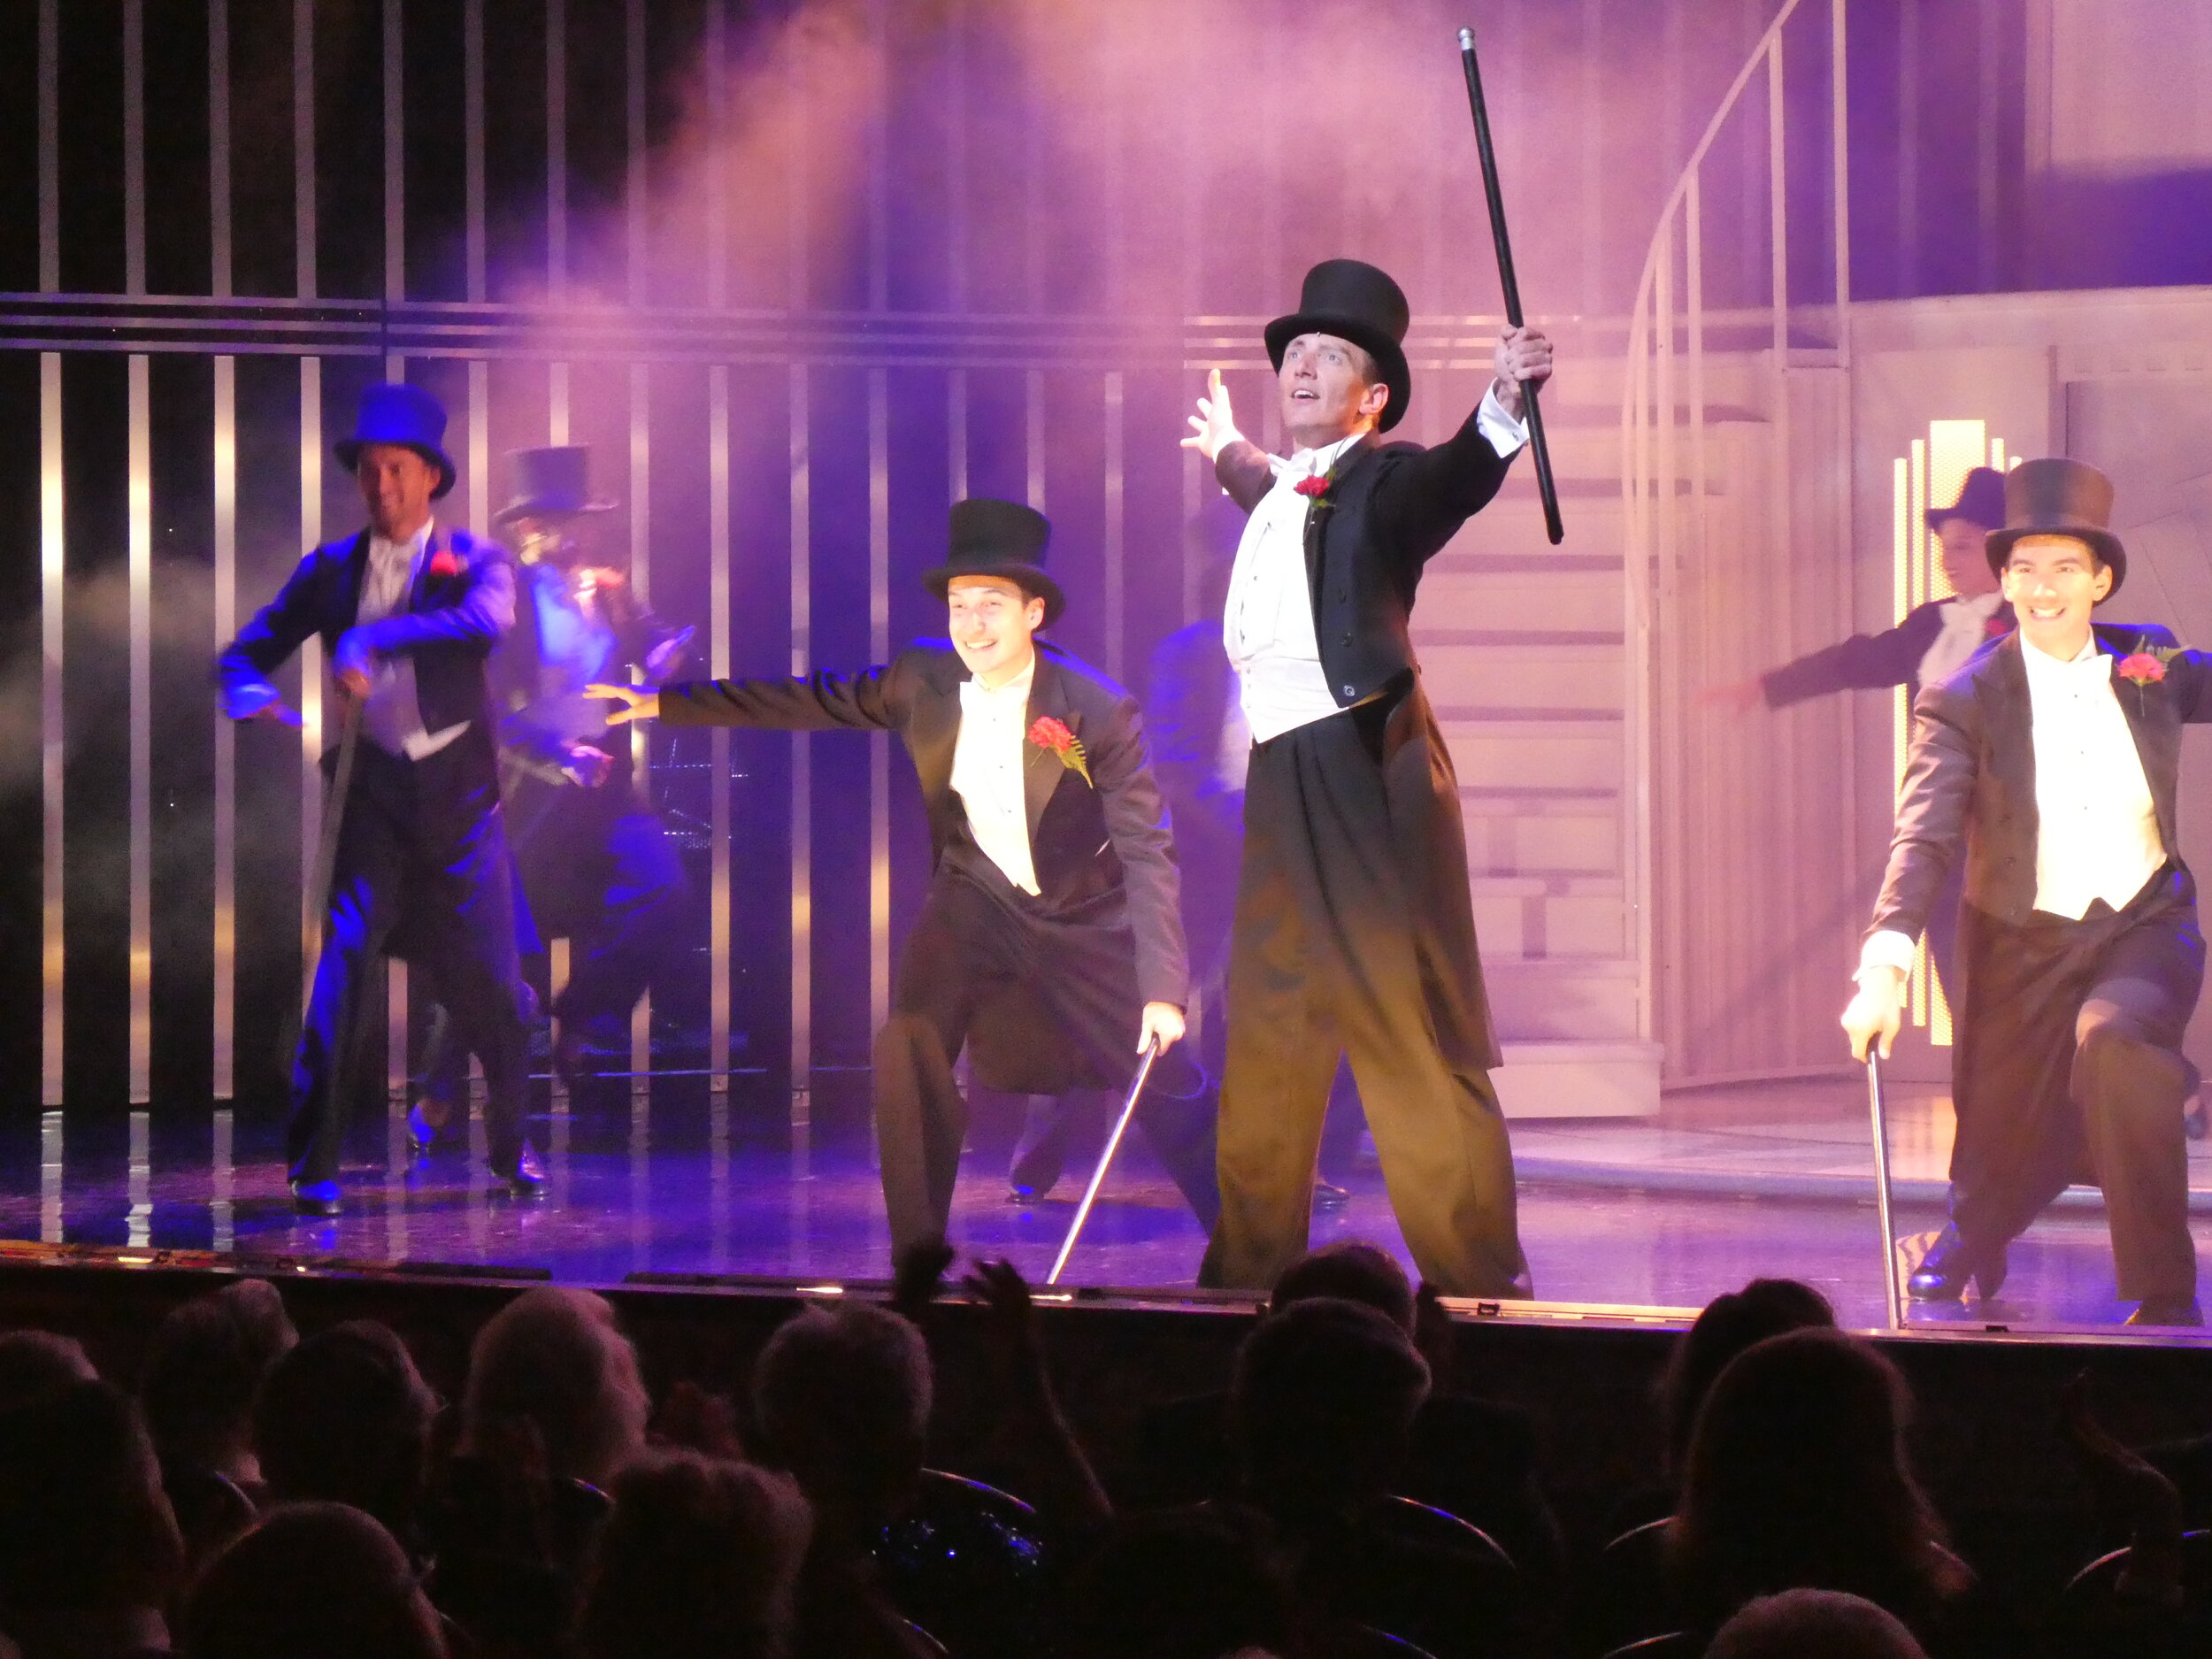 Top Hat. Exciting new production